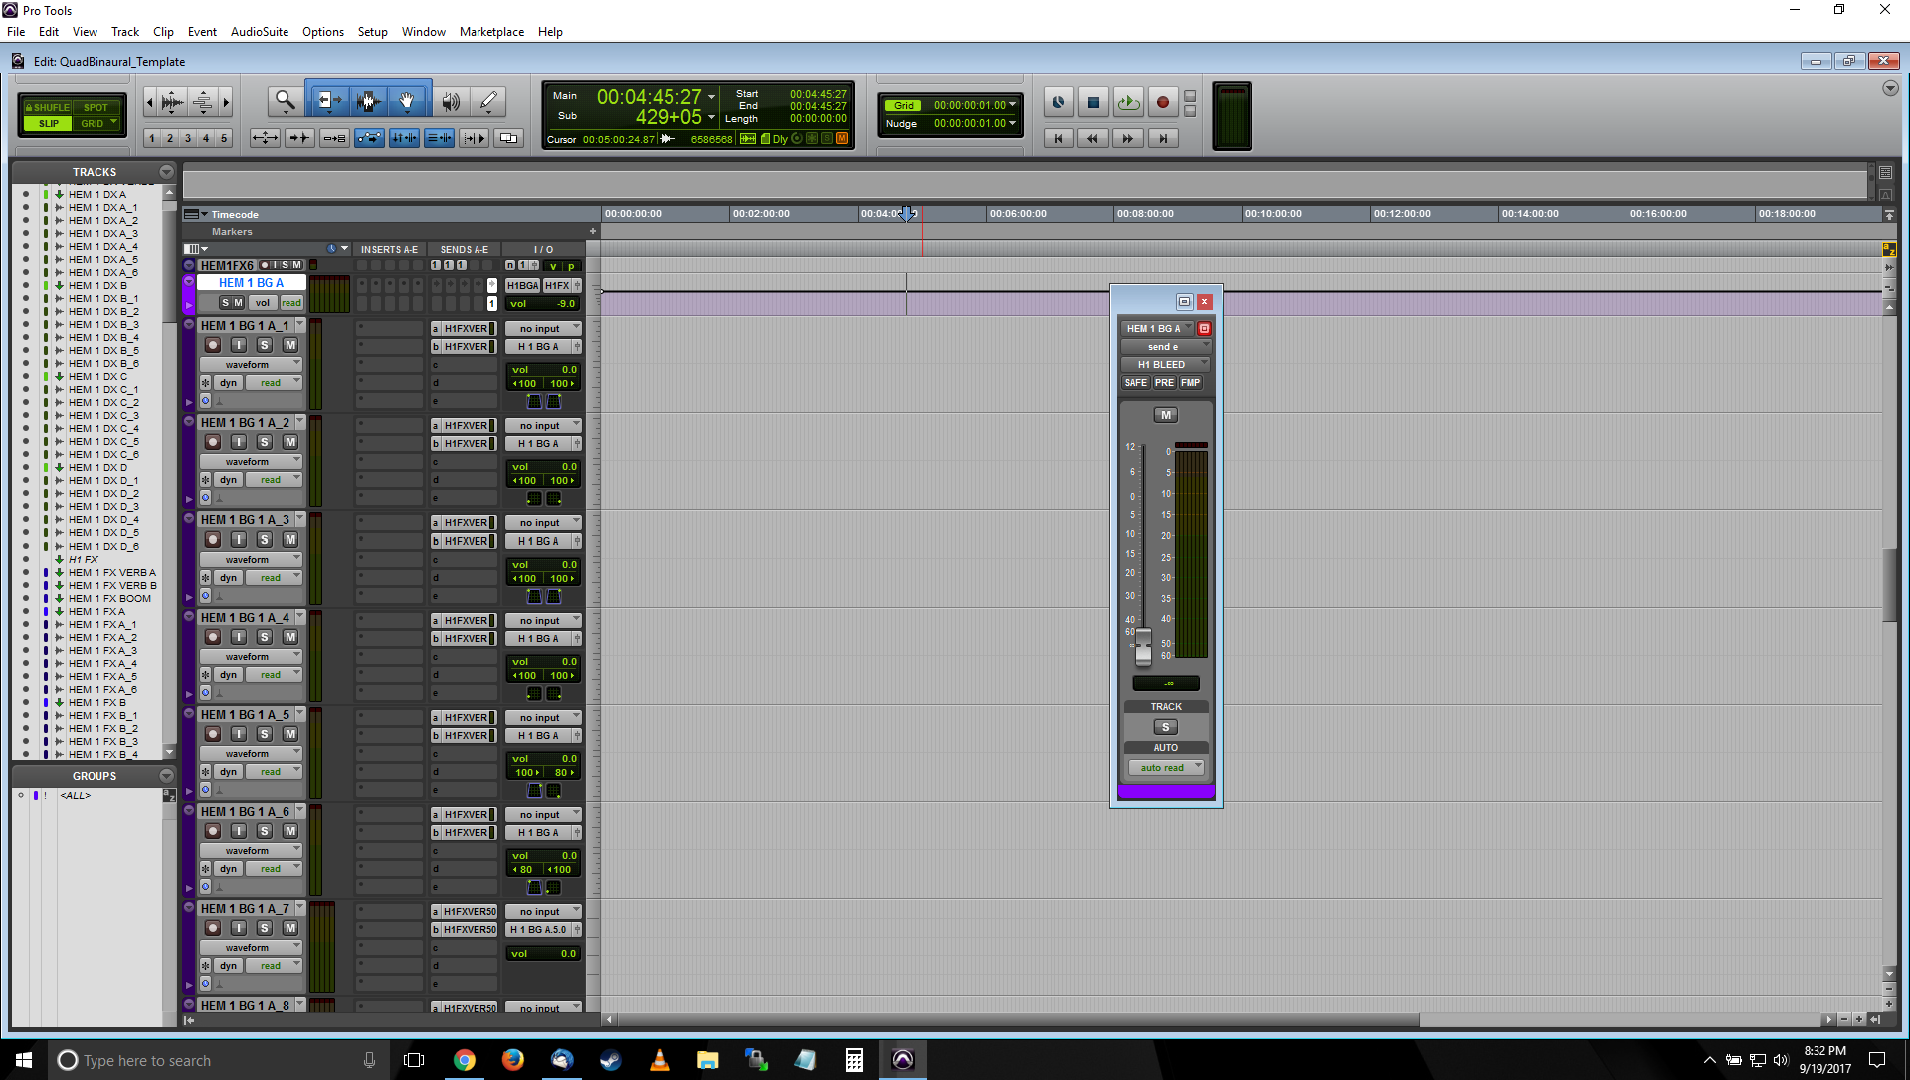 A screenshot of Pro Tools showing the BG predub